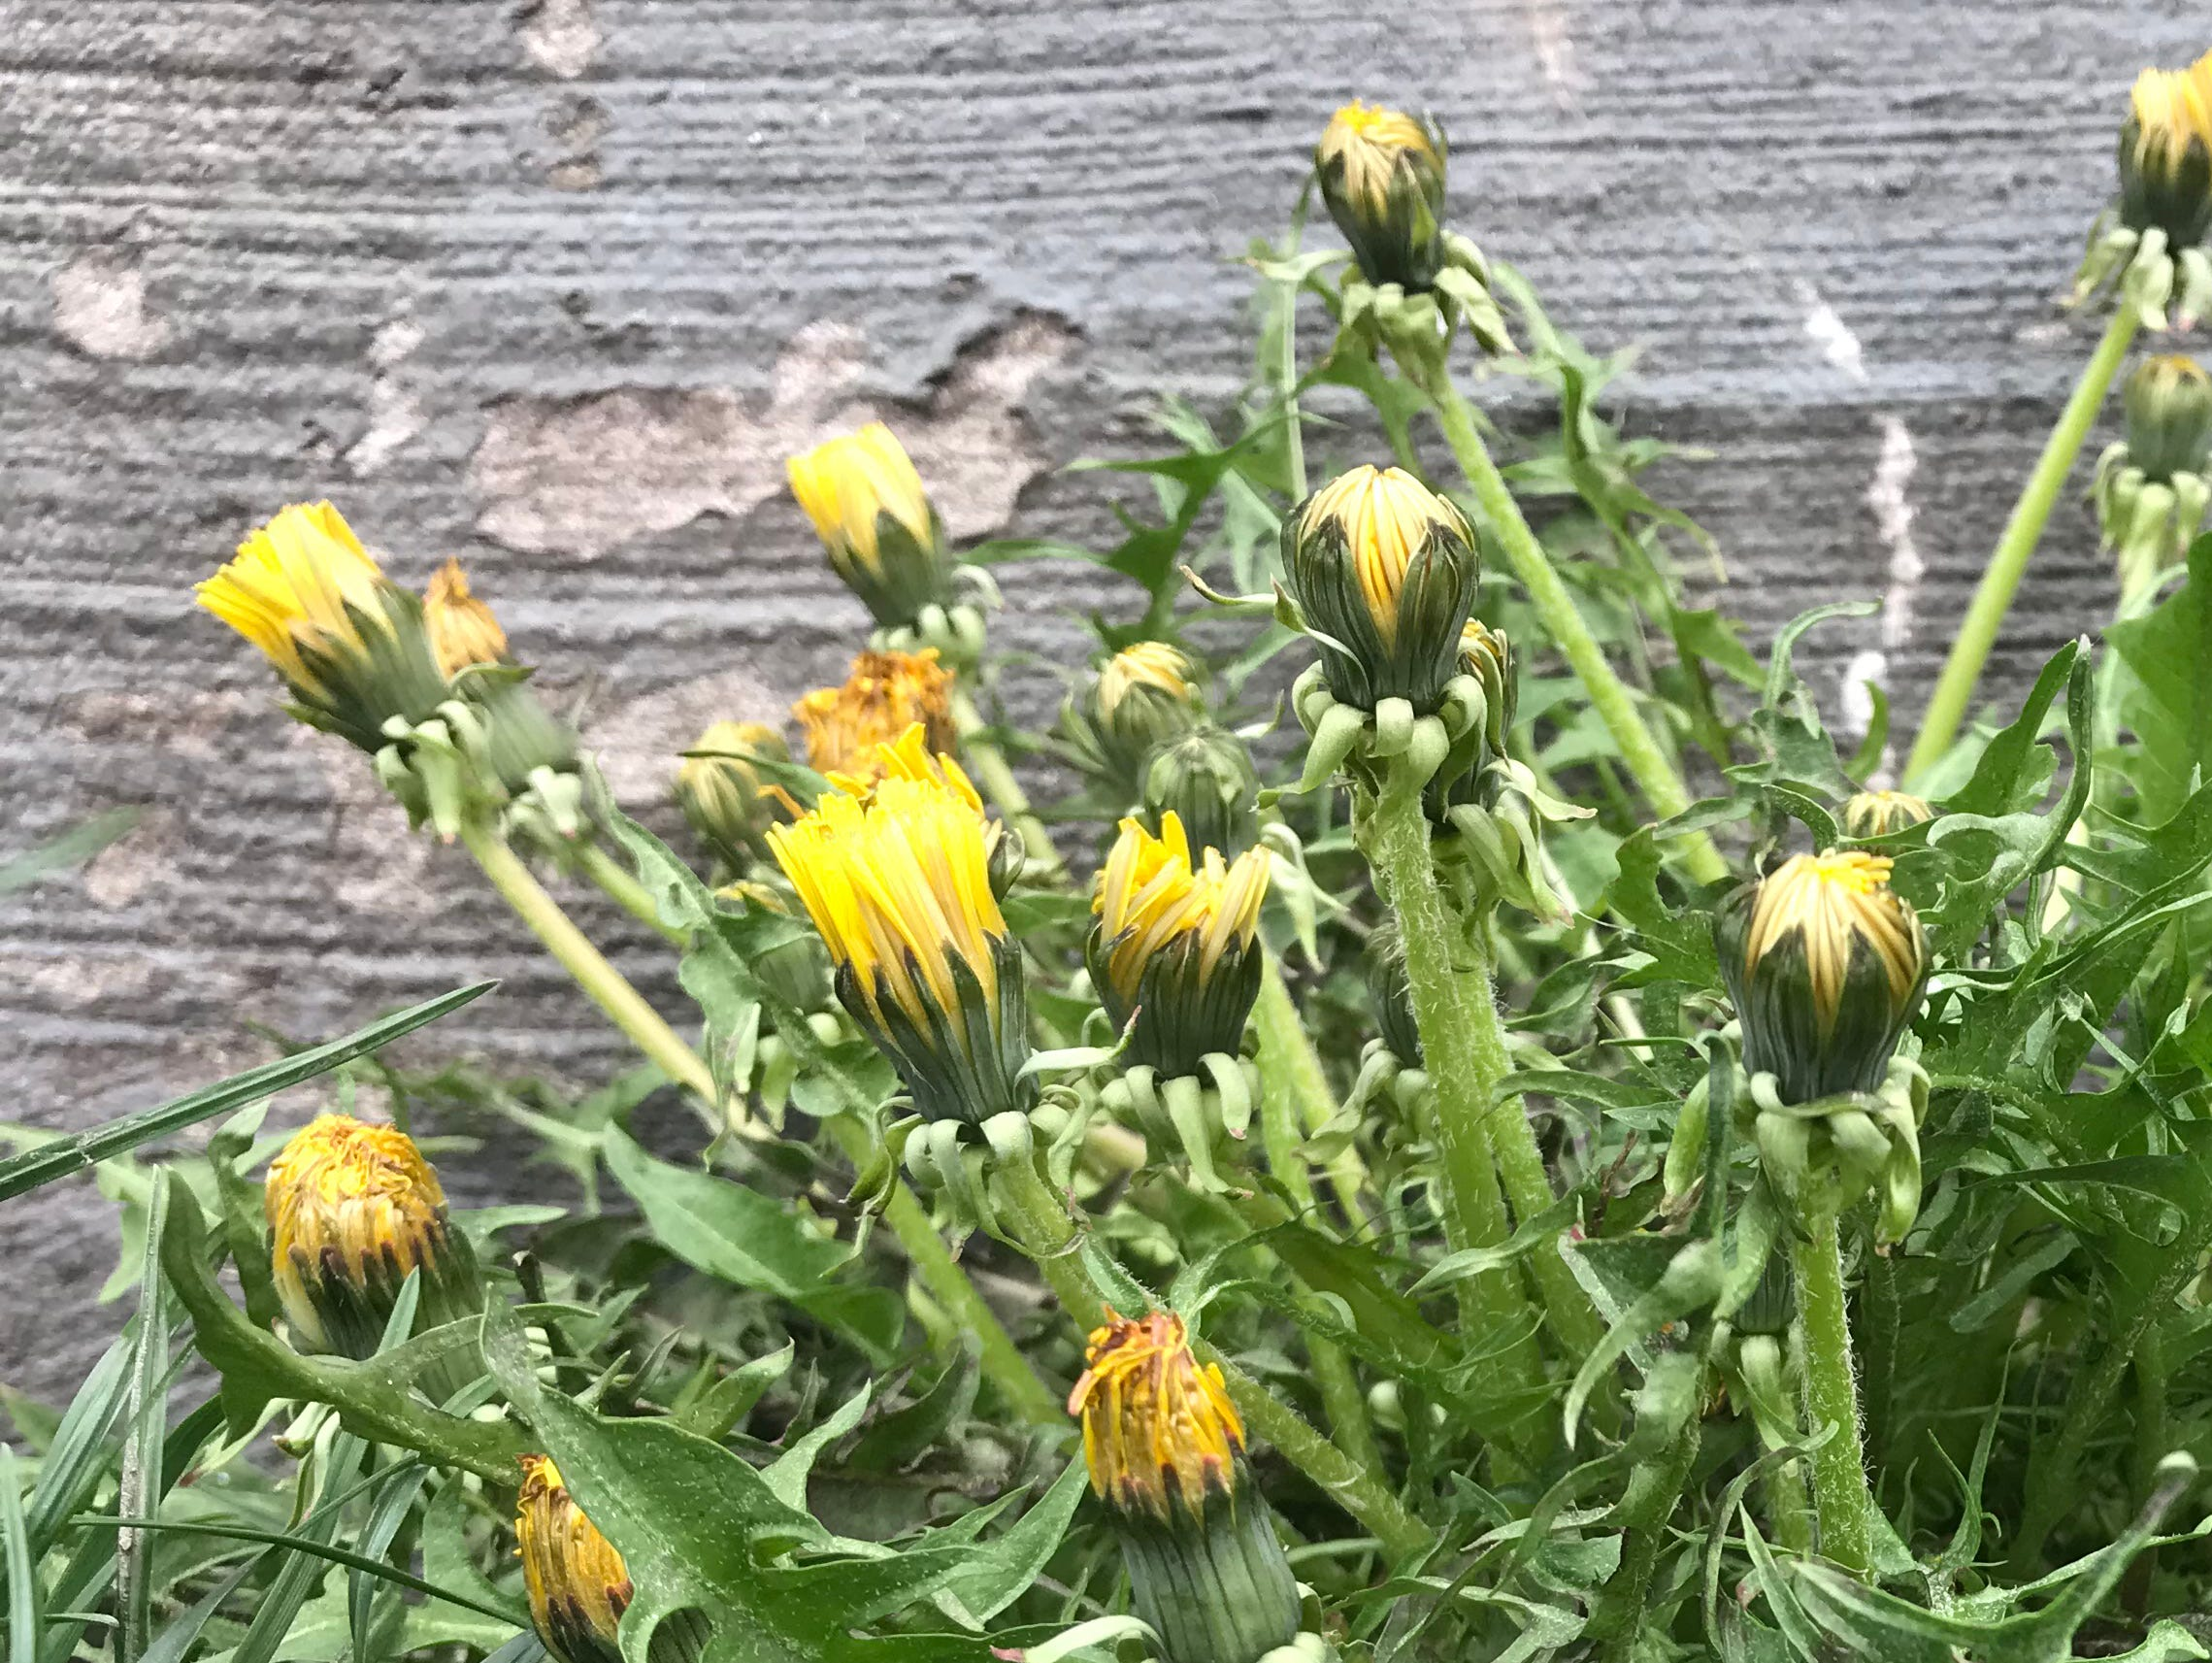 Dandelions flower on King Street in Burlington on Monday, April 22, 2019.